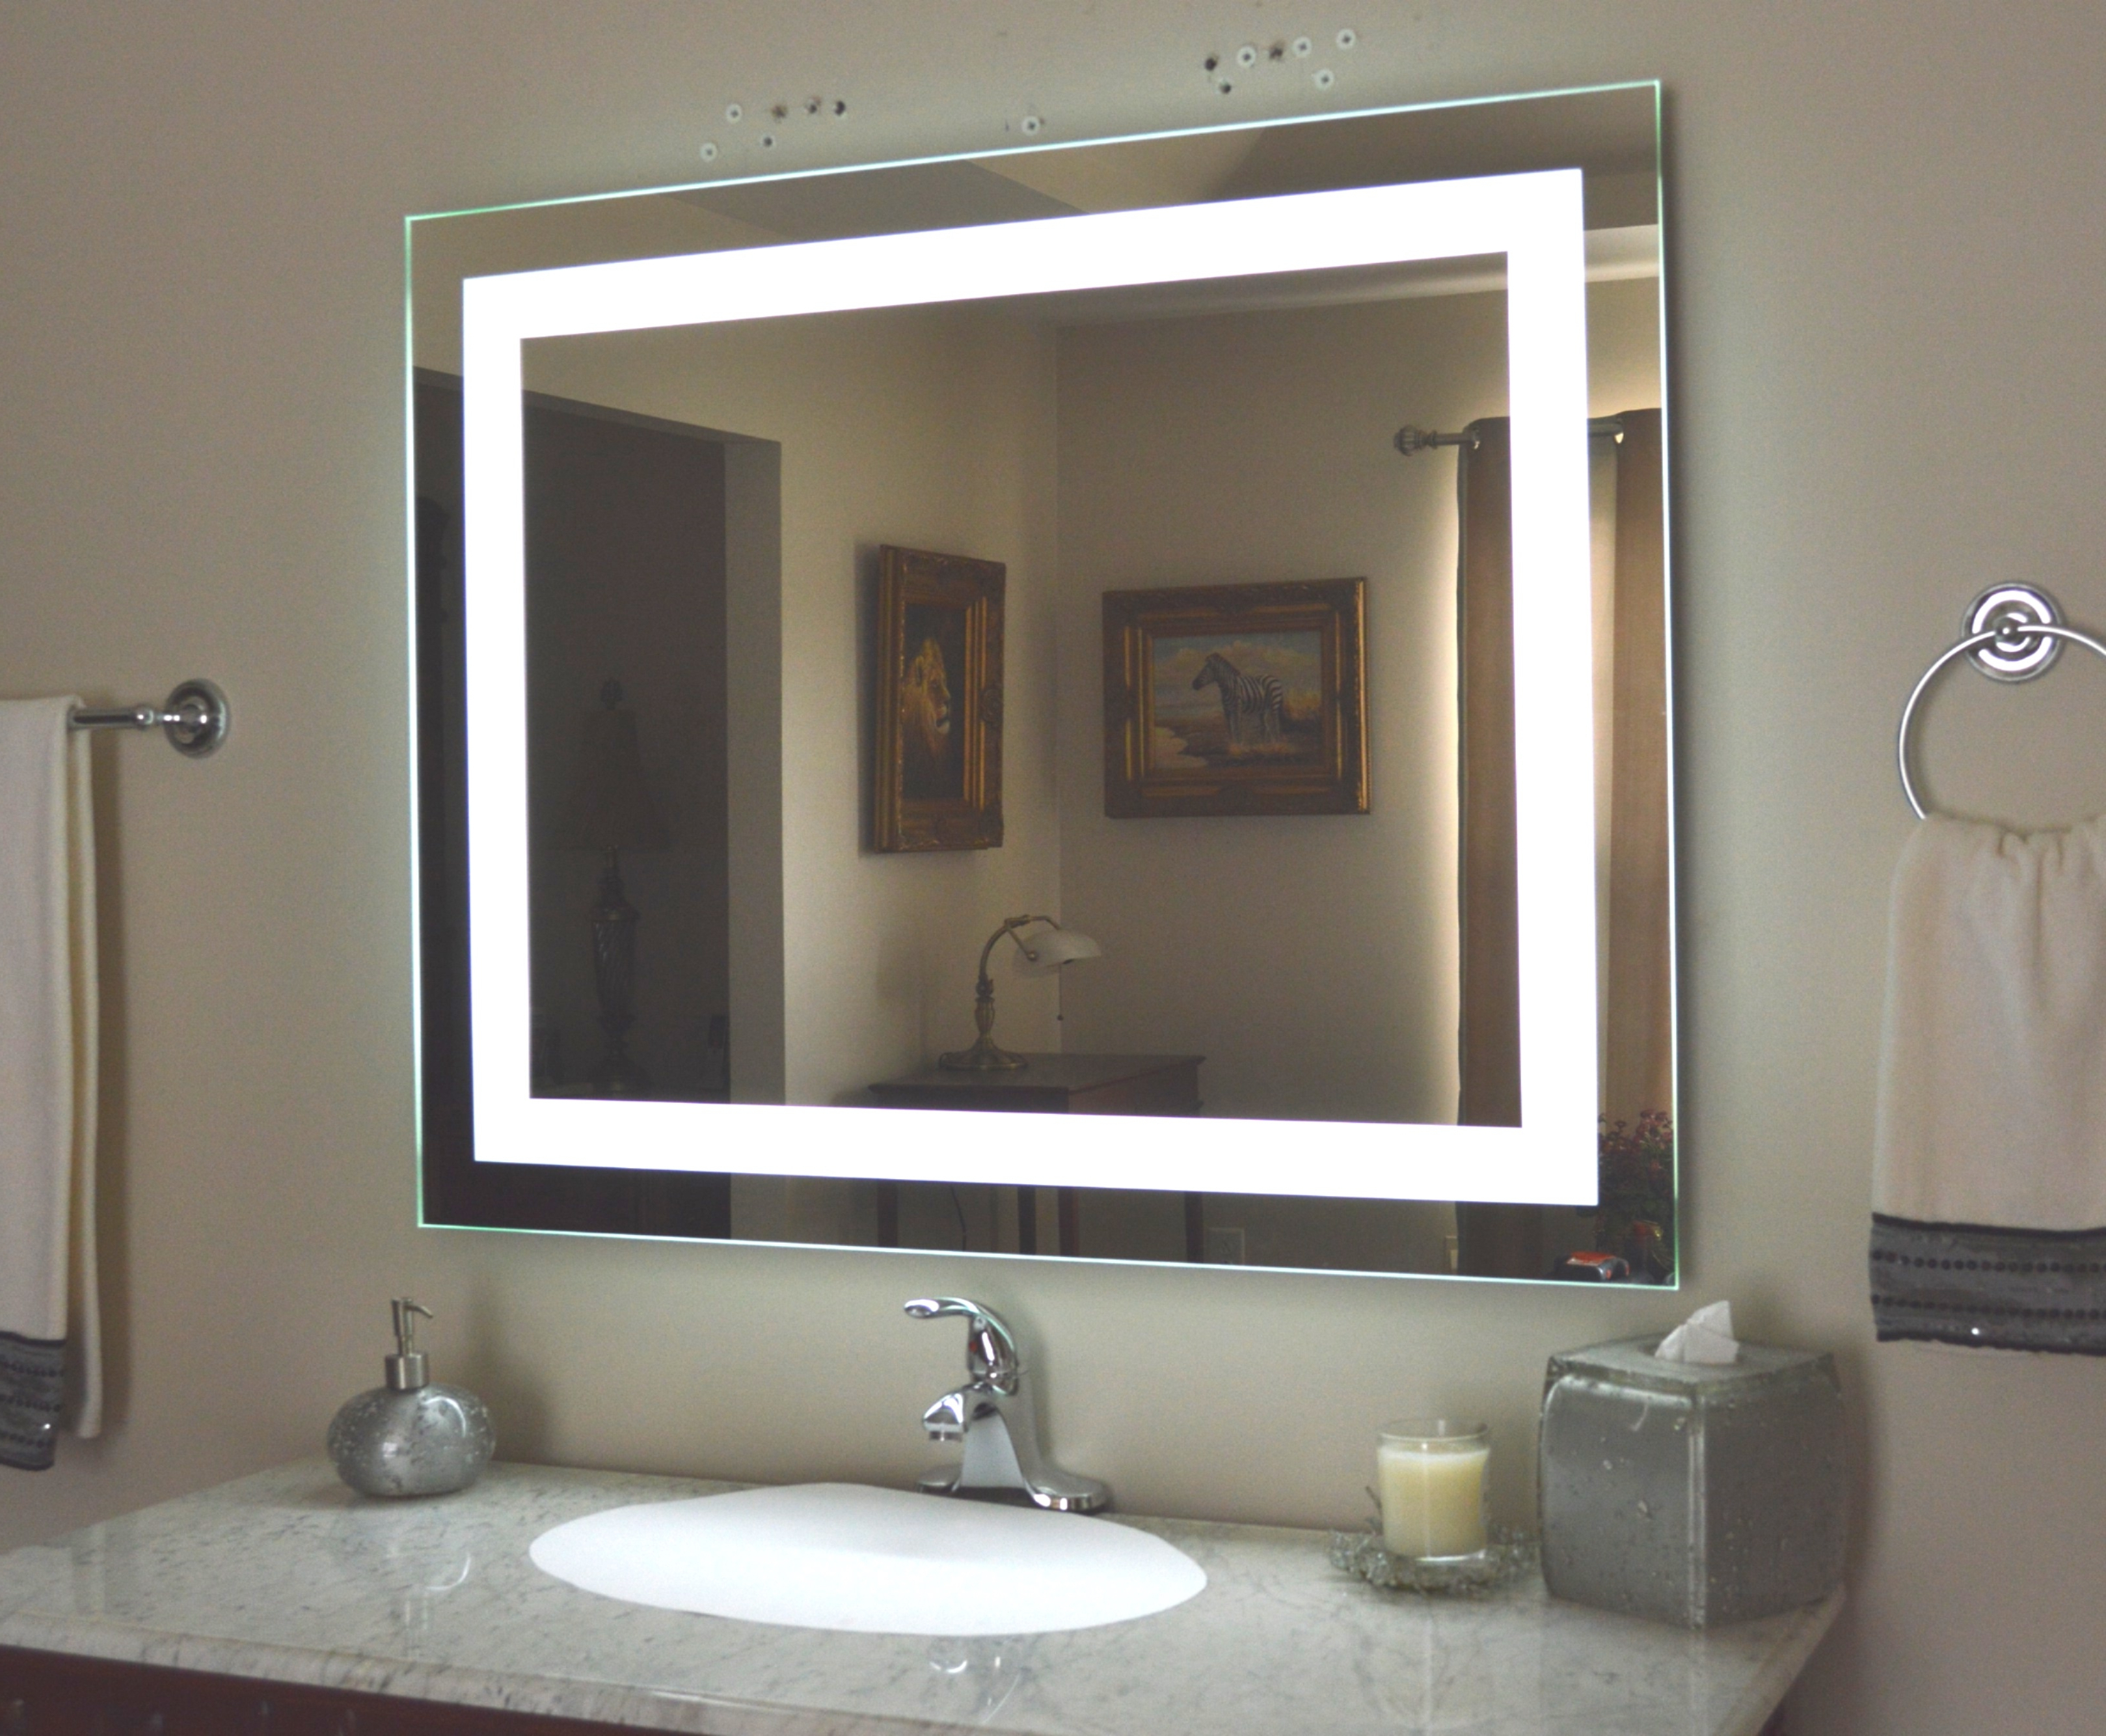 Argos Bathroom Mirrors Illuminated With Regard To Famous Illuminated Wall Mirrors (Gallery 7 of 20)